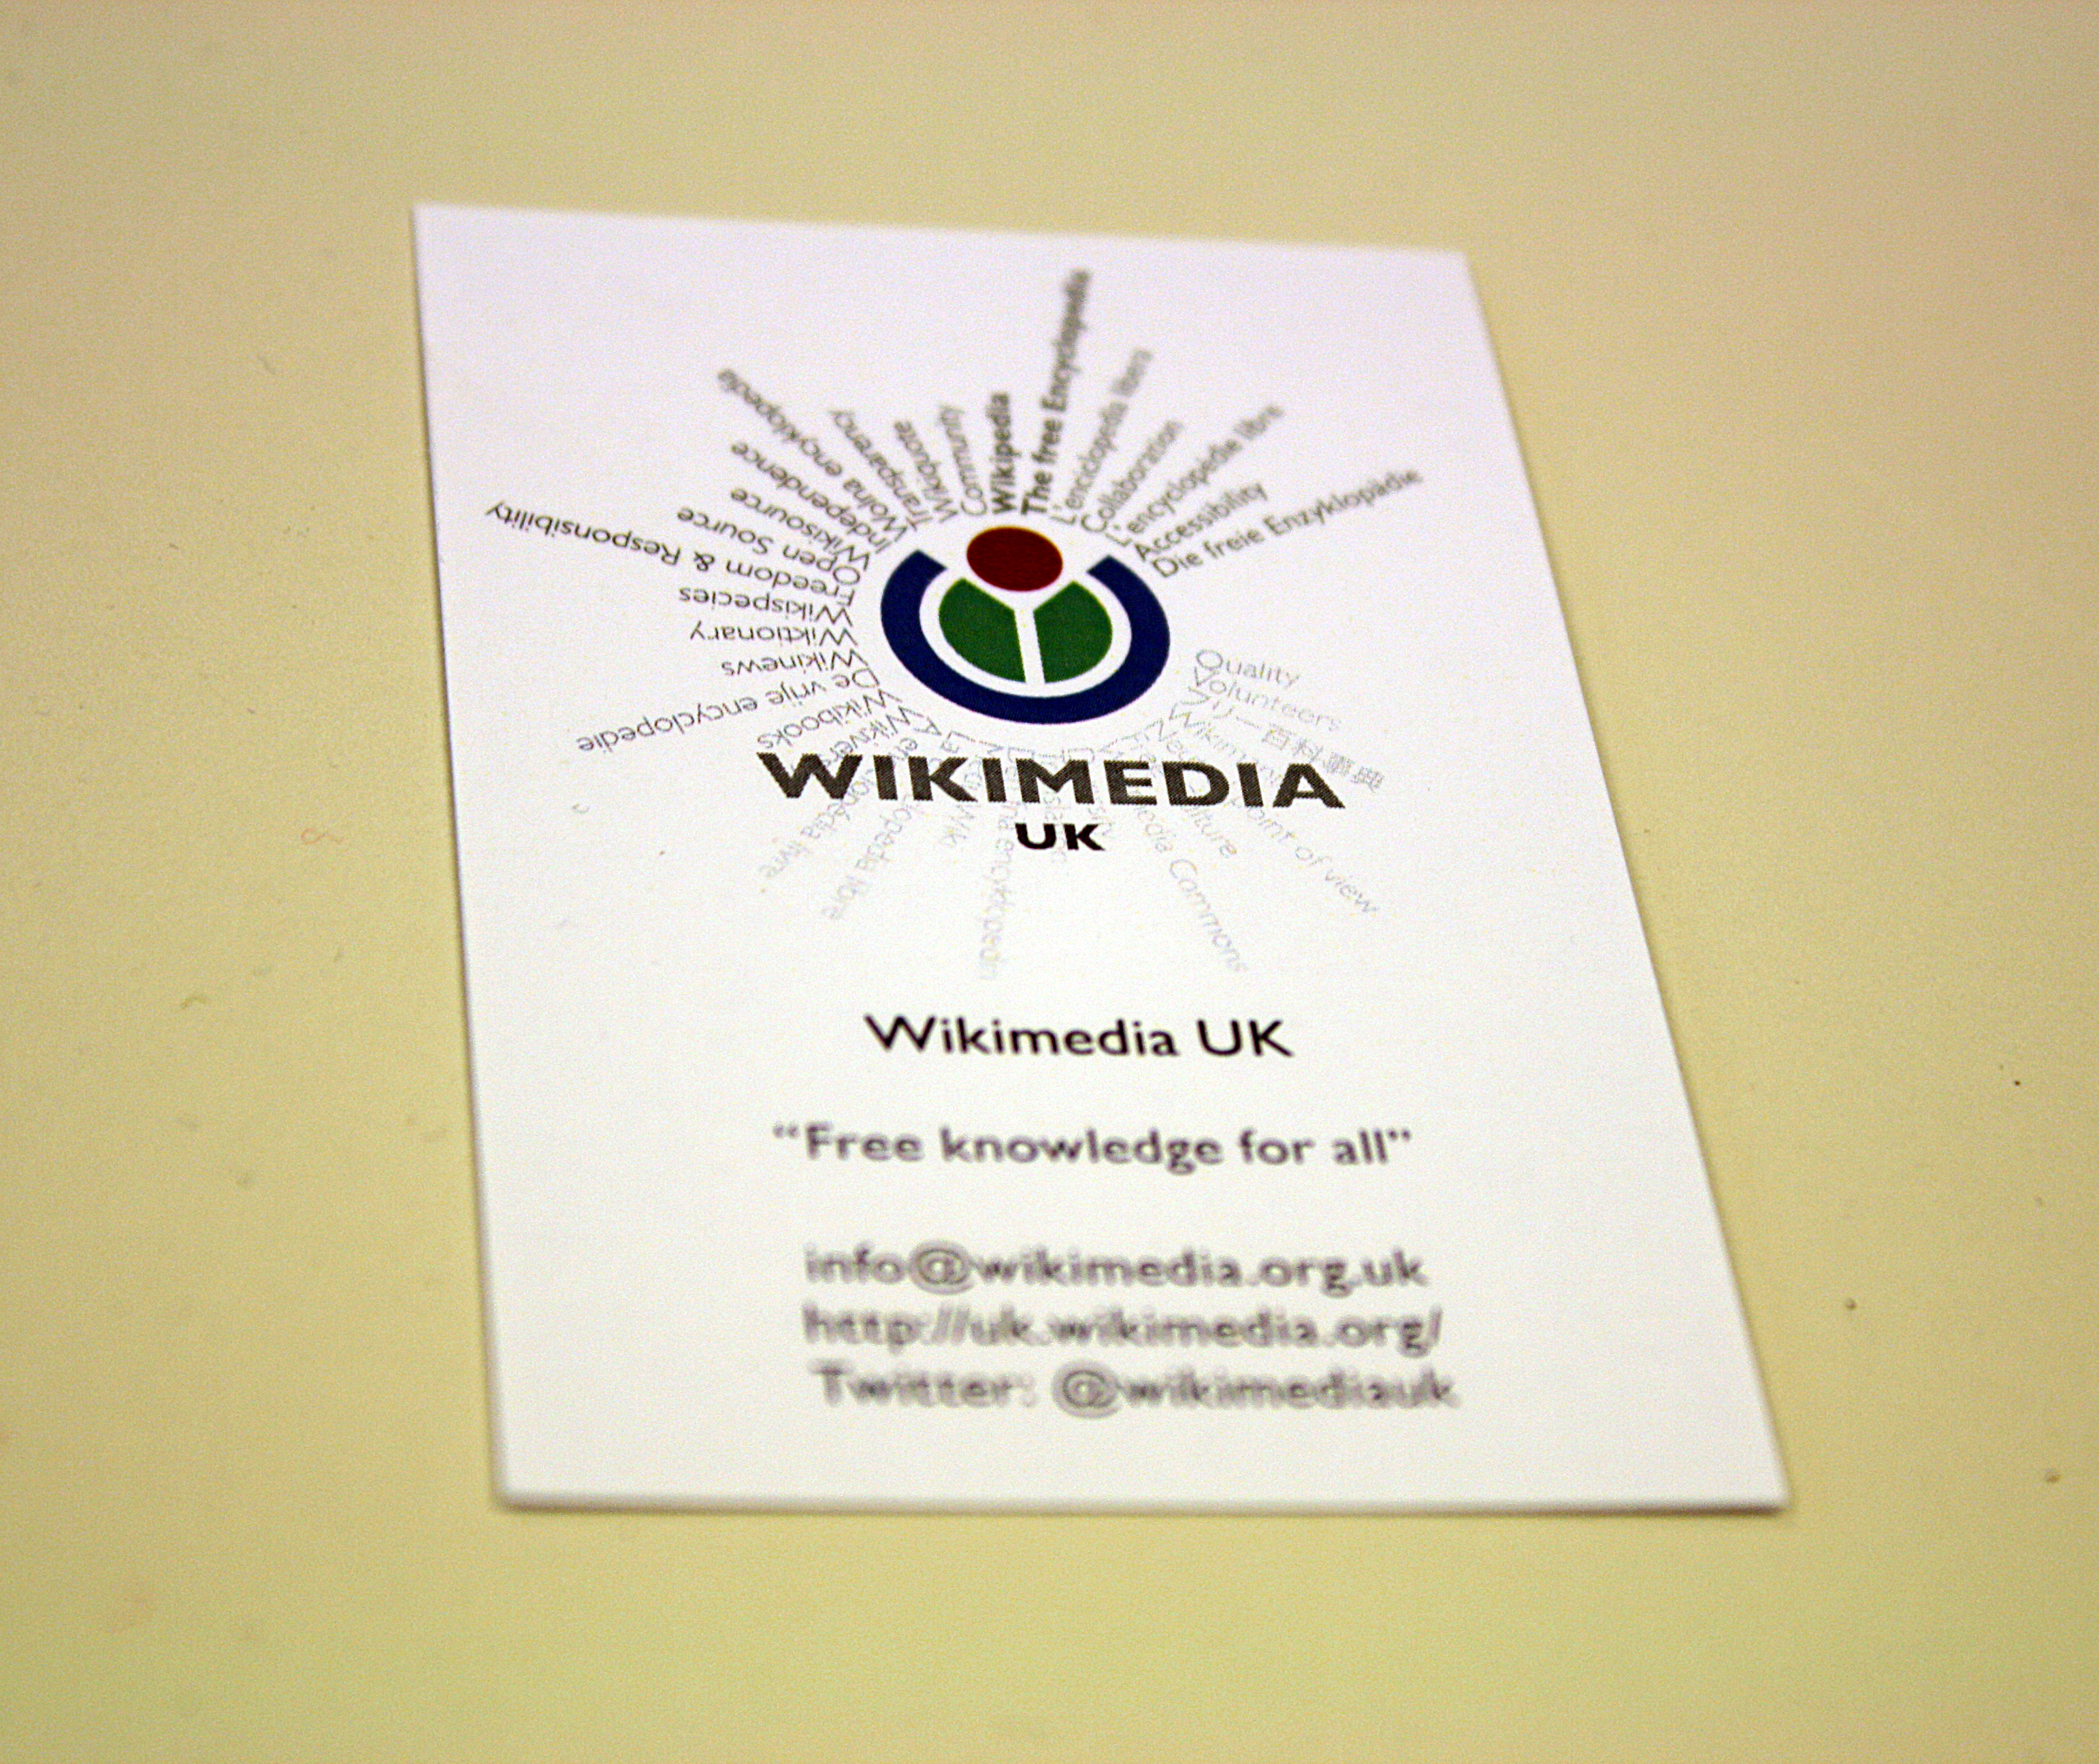 File:Wikimedia UK Business Cards 2.jpg - Wikimedia Commons